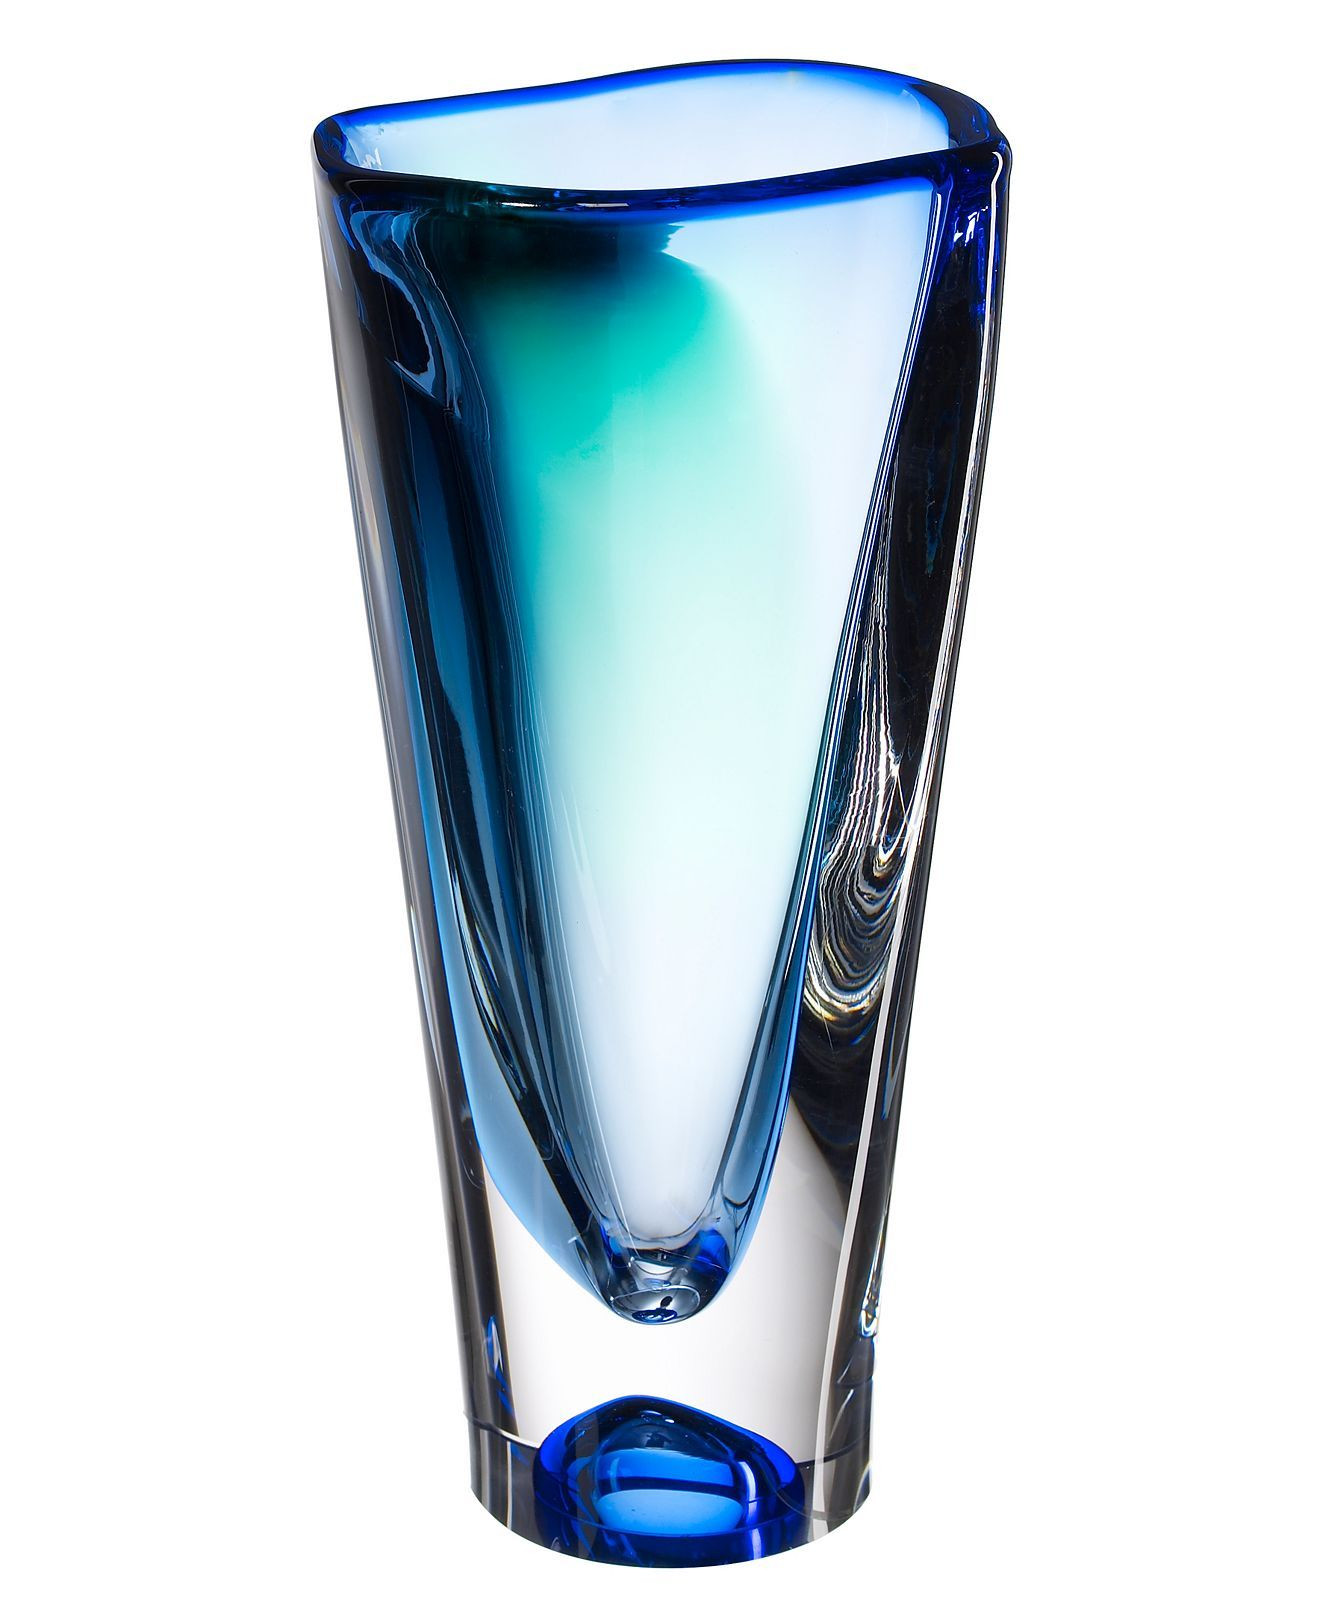 kosta boda mirage vase green blue of 13 best kosta boda images on pinterest kosta boda crystals and with regard to 13 best kosta boda images on pinterest kosta boda crystals and glass art